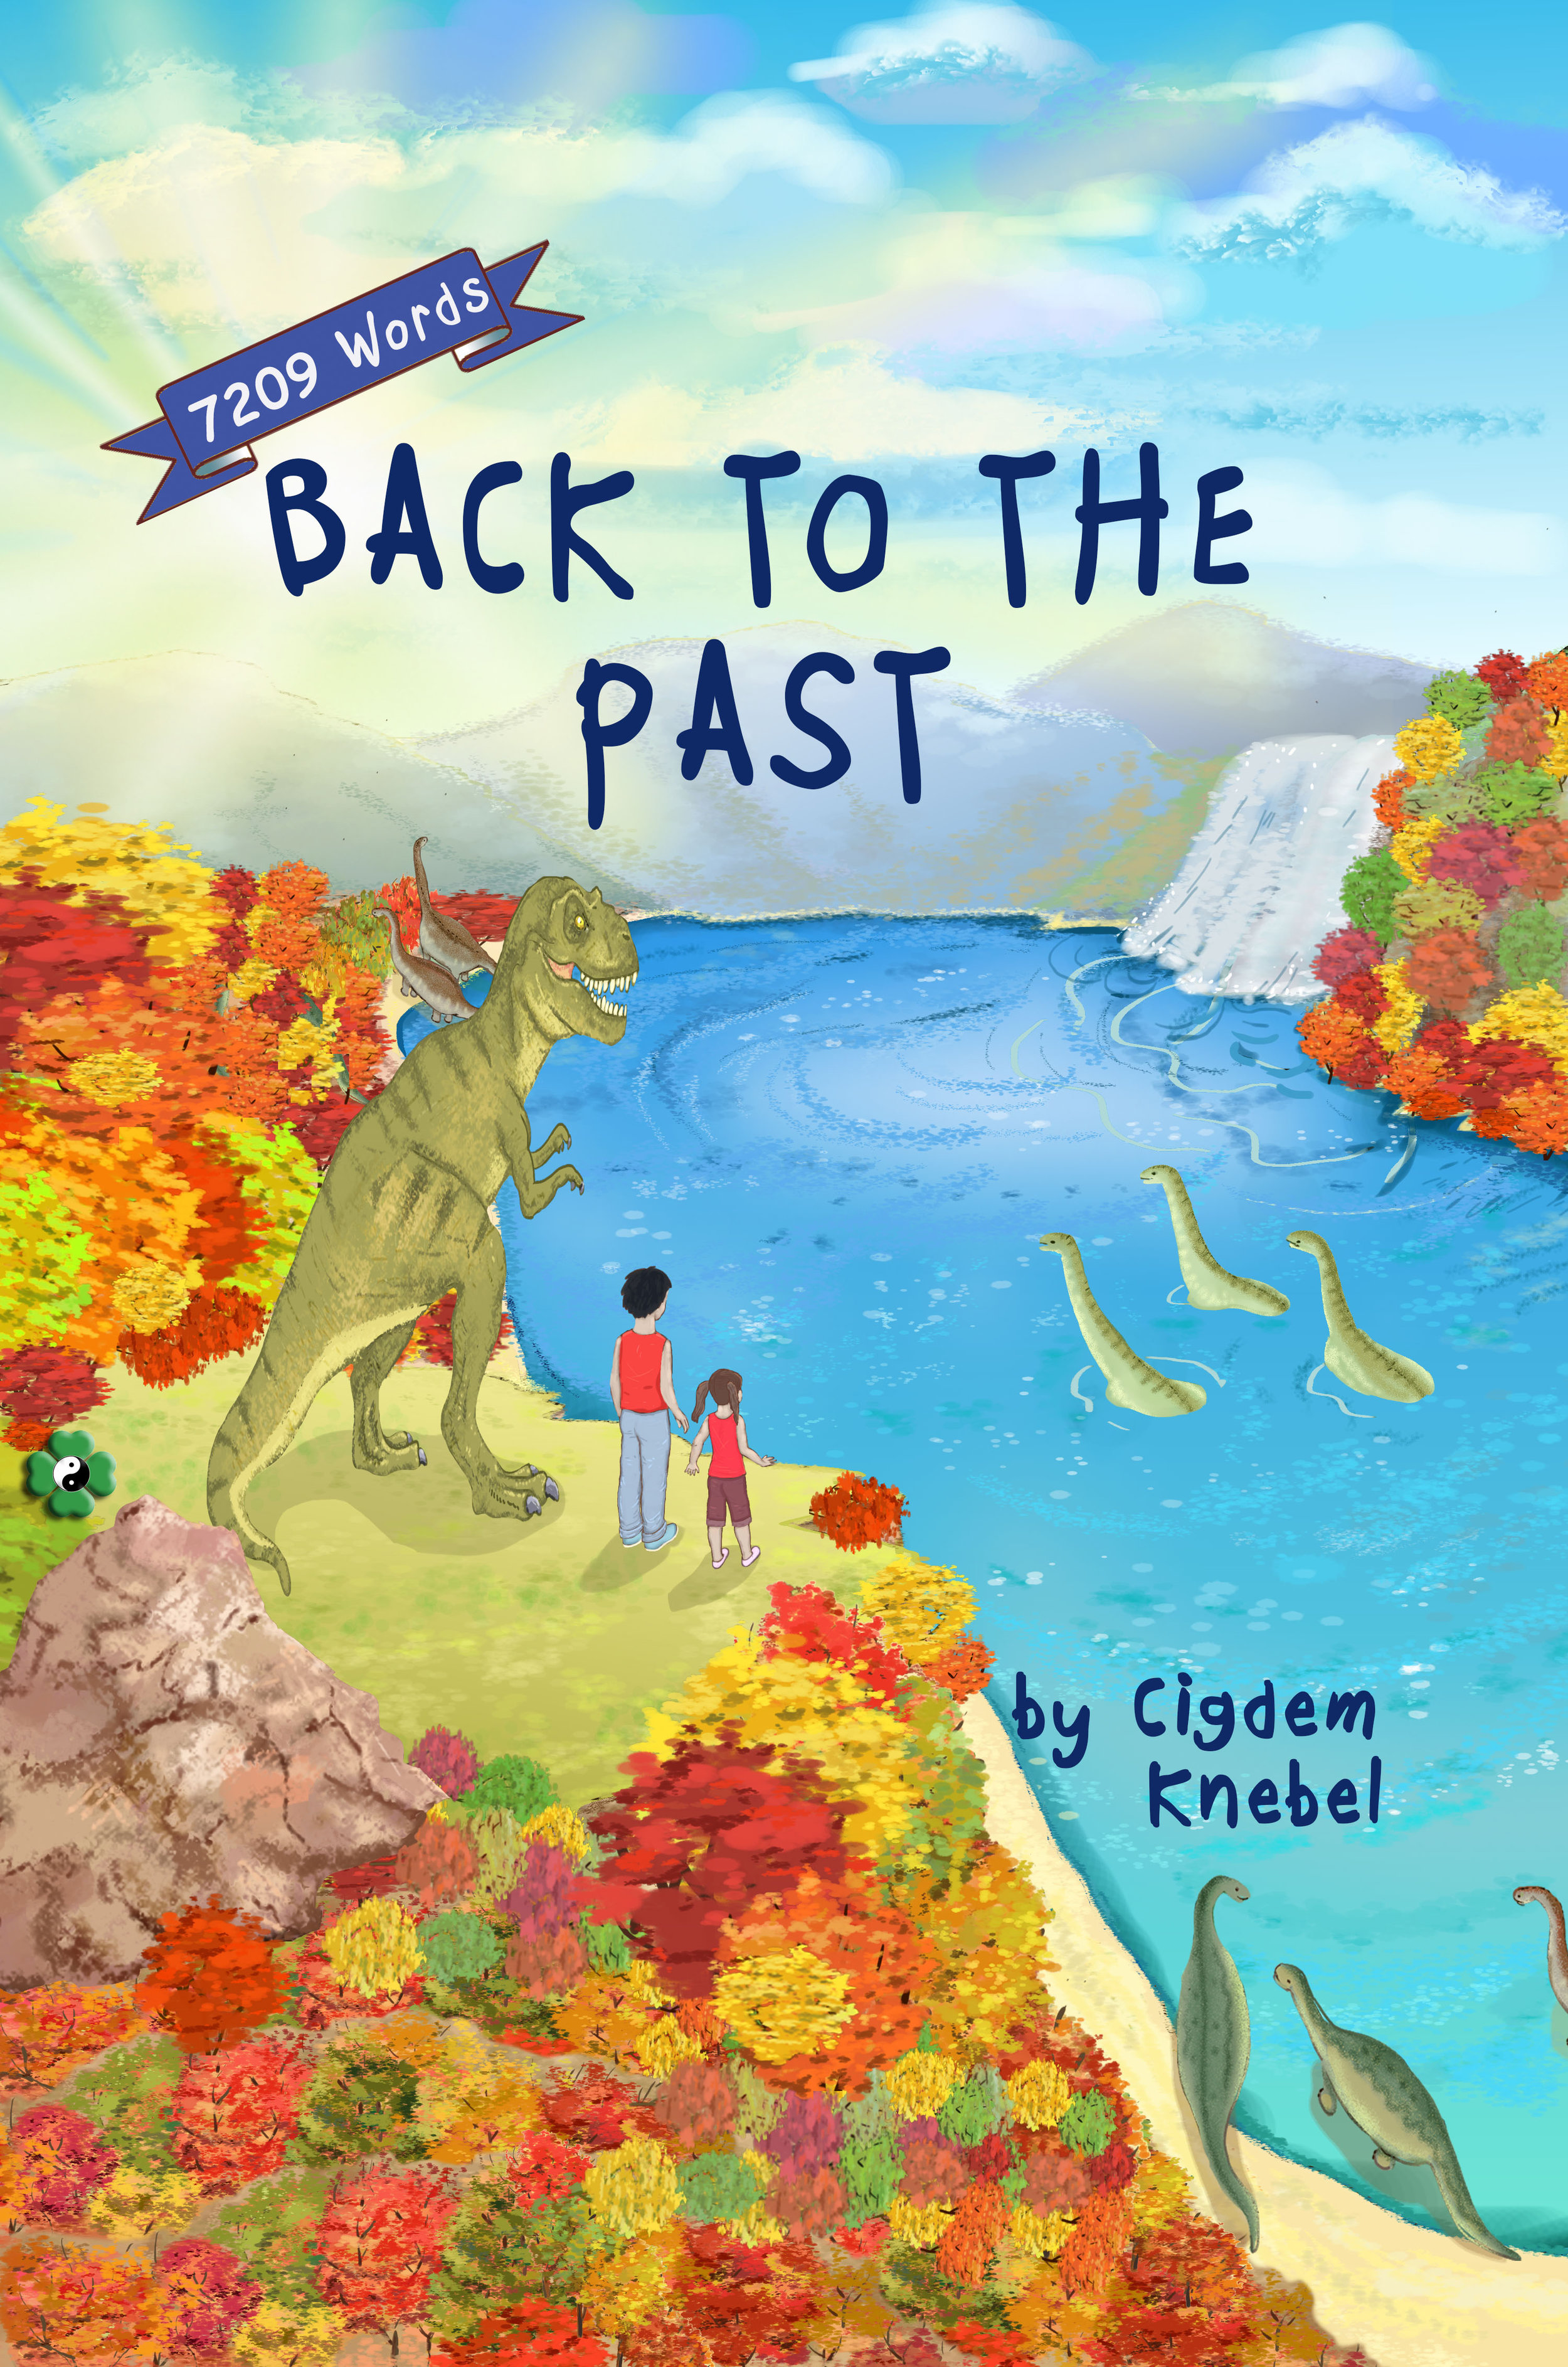 Back to the Past FrontCover 2019_01_28.jpg